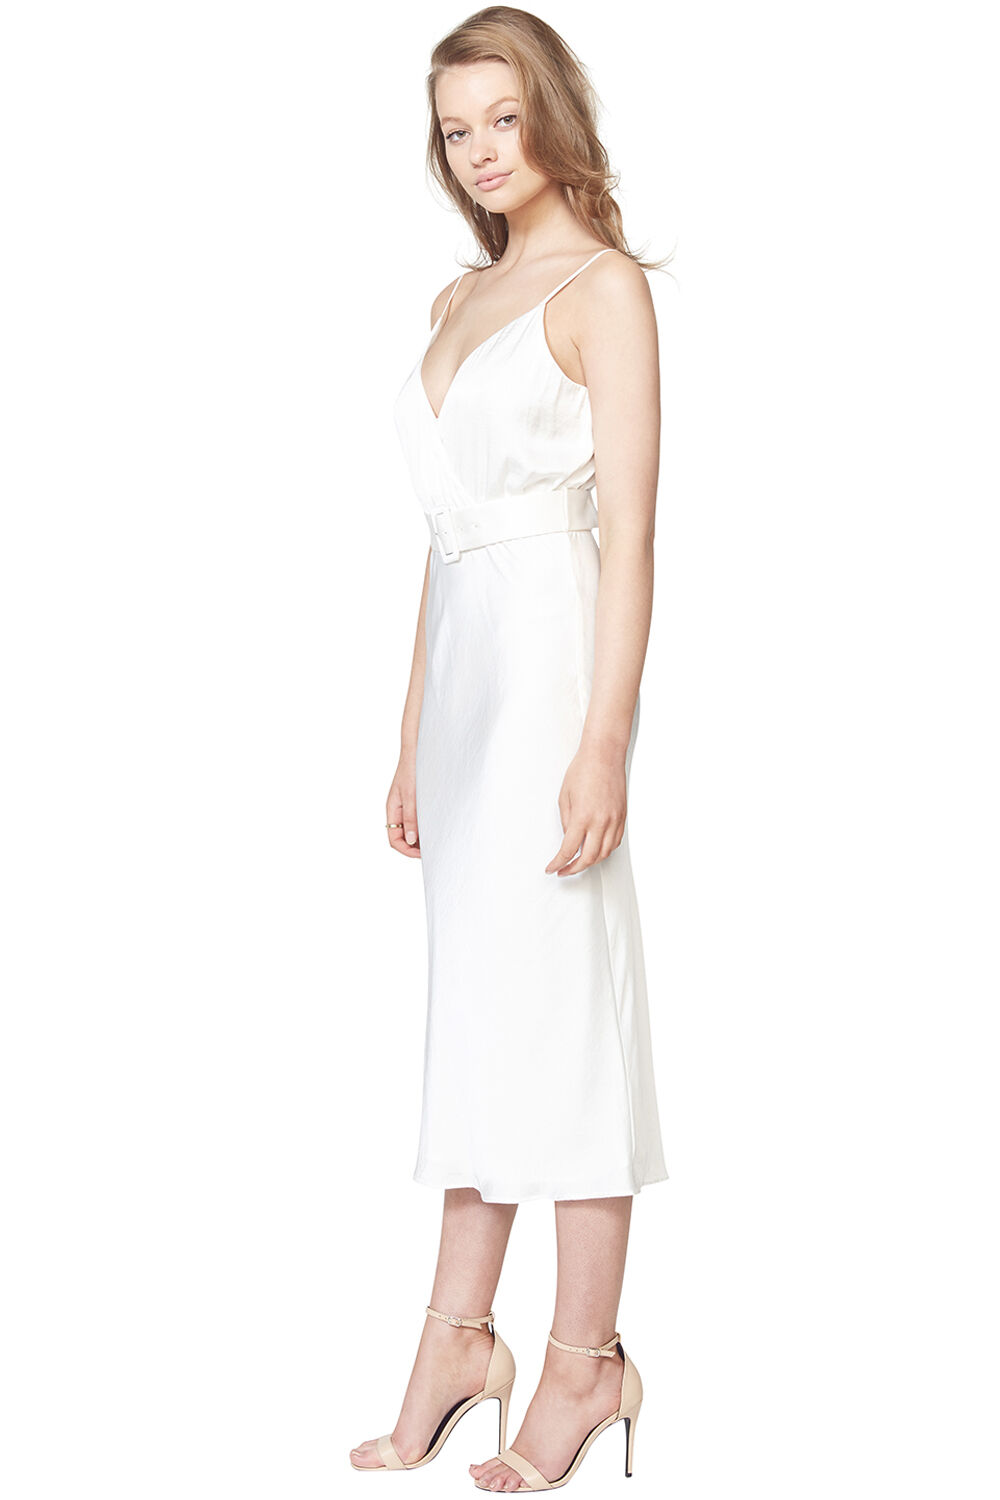 REAGAN MIDI DRESS in colour CLOUD DANCER